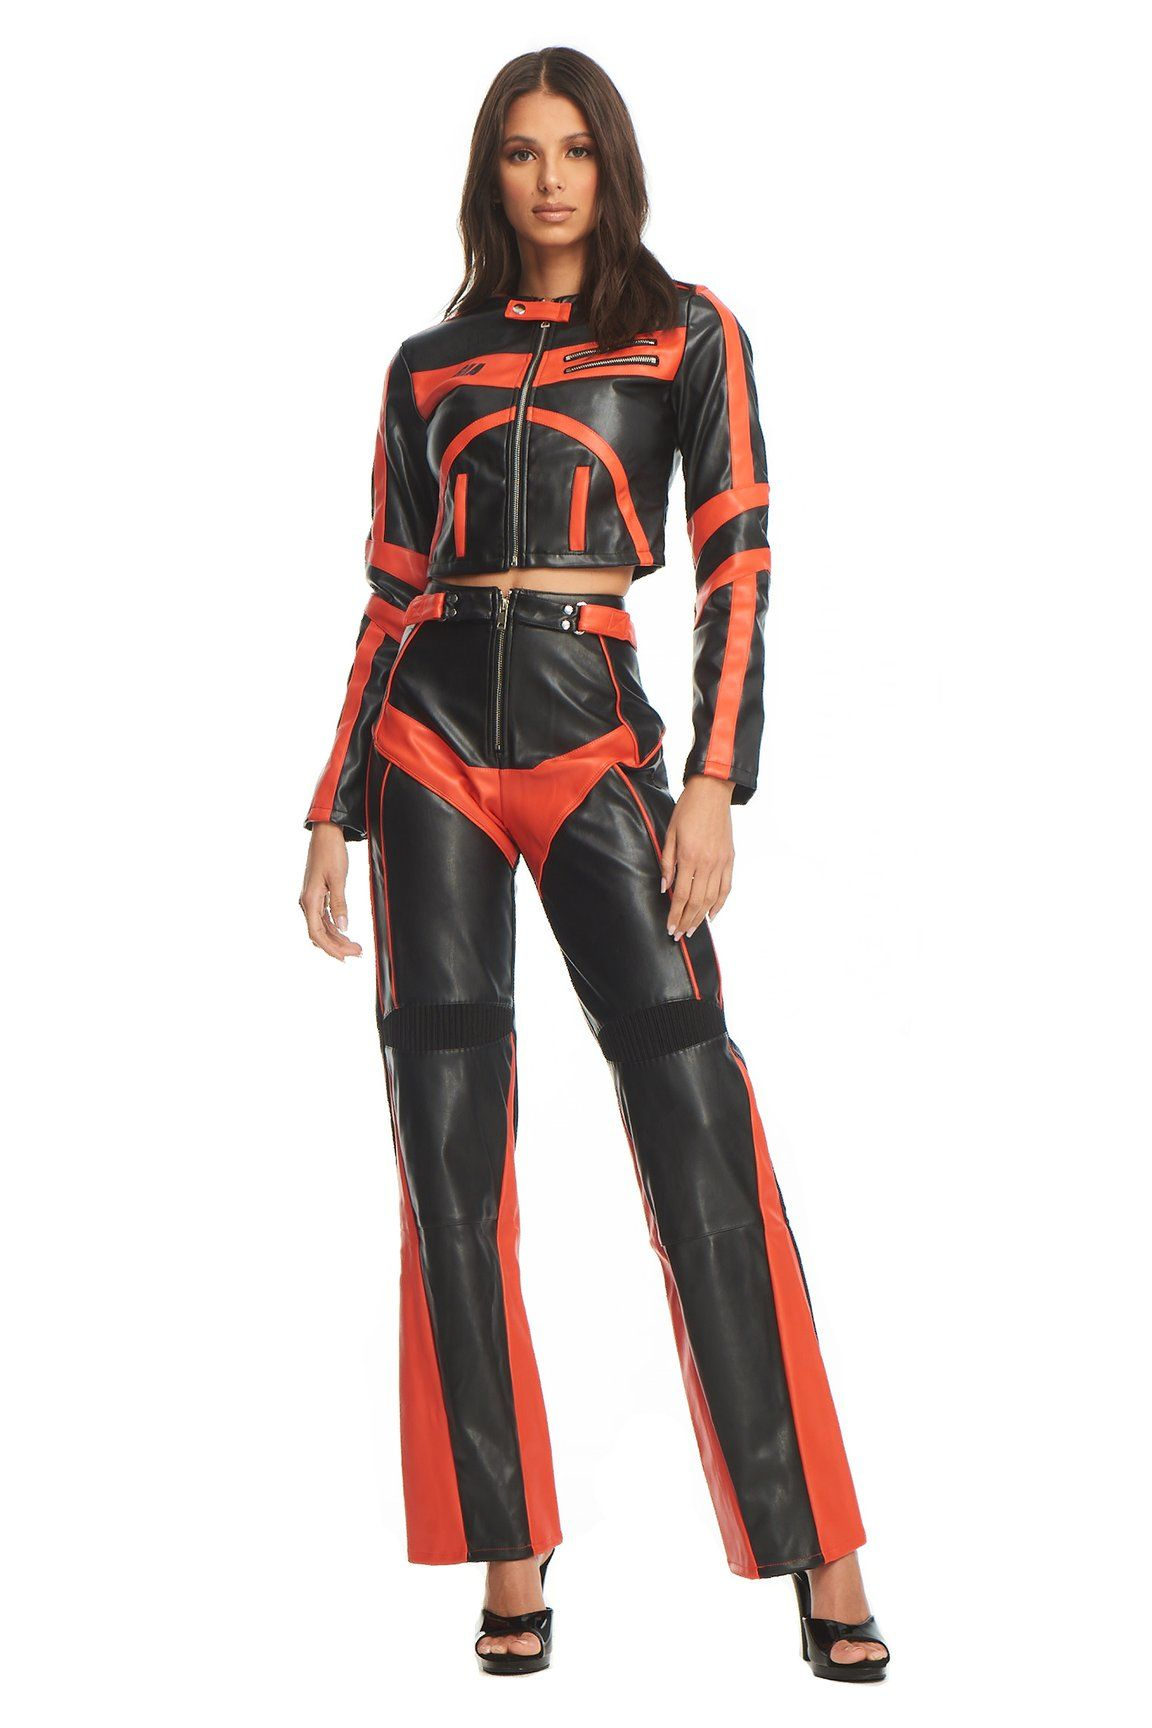 New I.AM.GIA I.am.gia, Badass outfit, Leather outfit